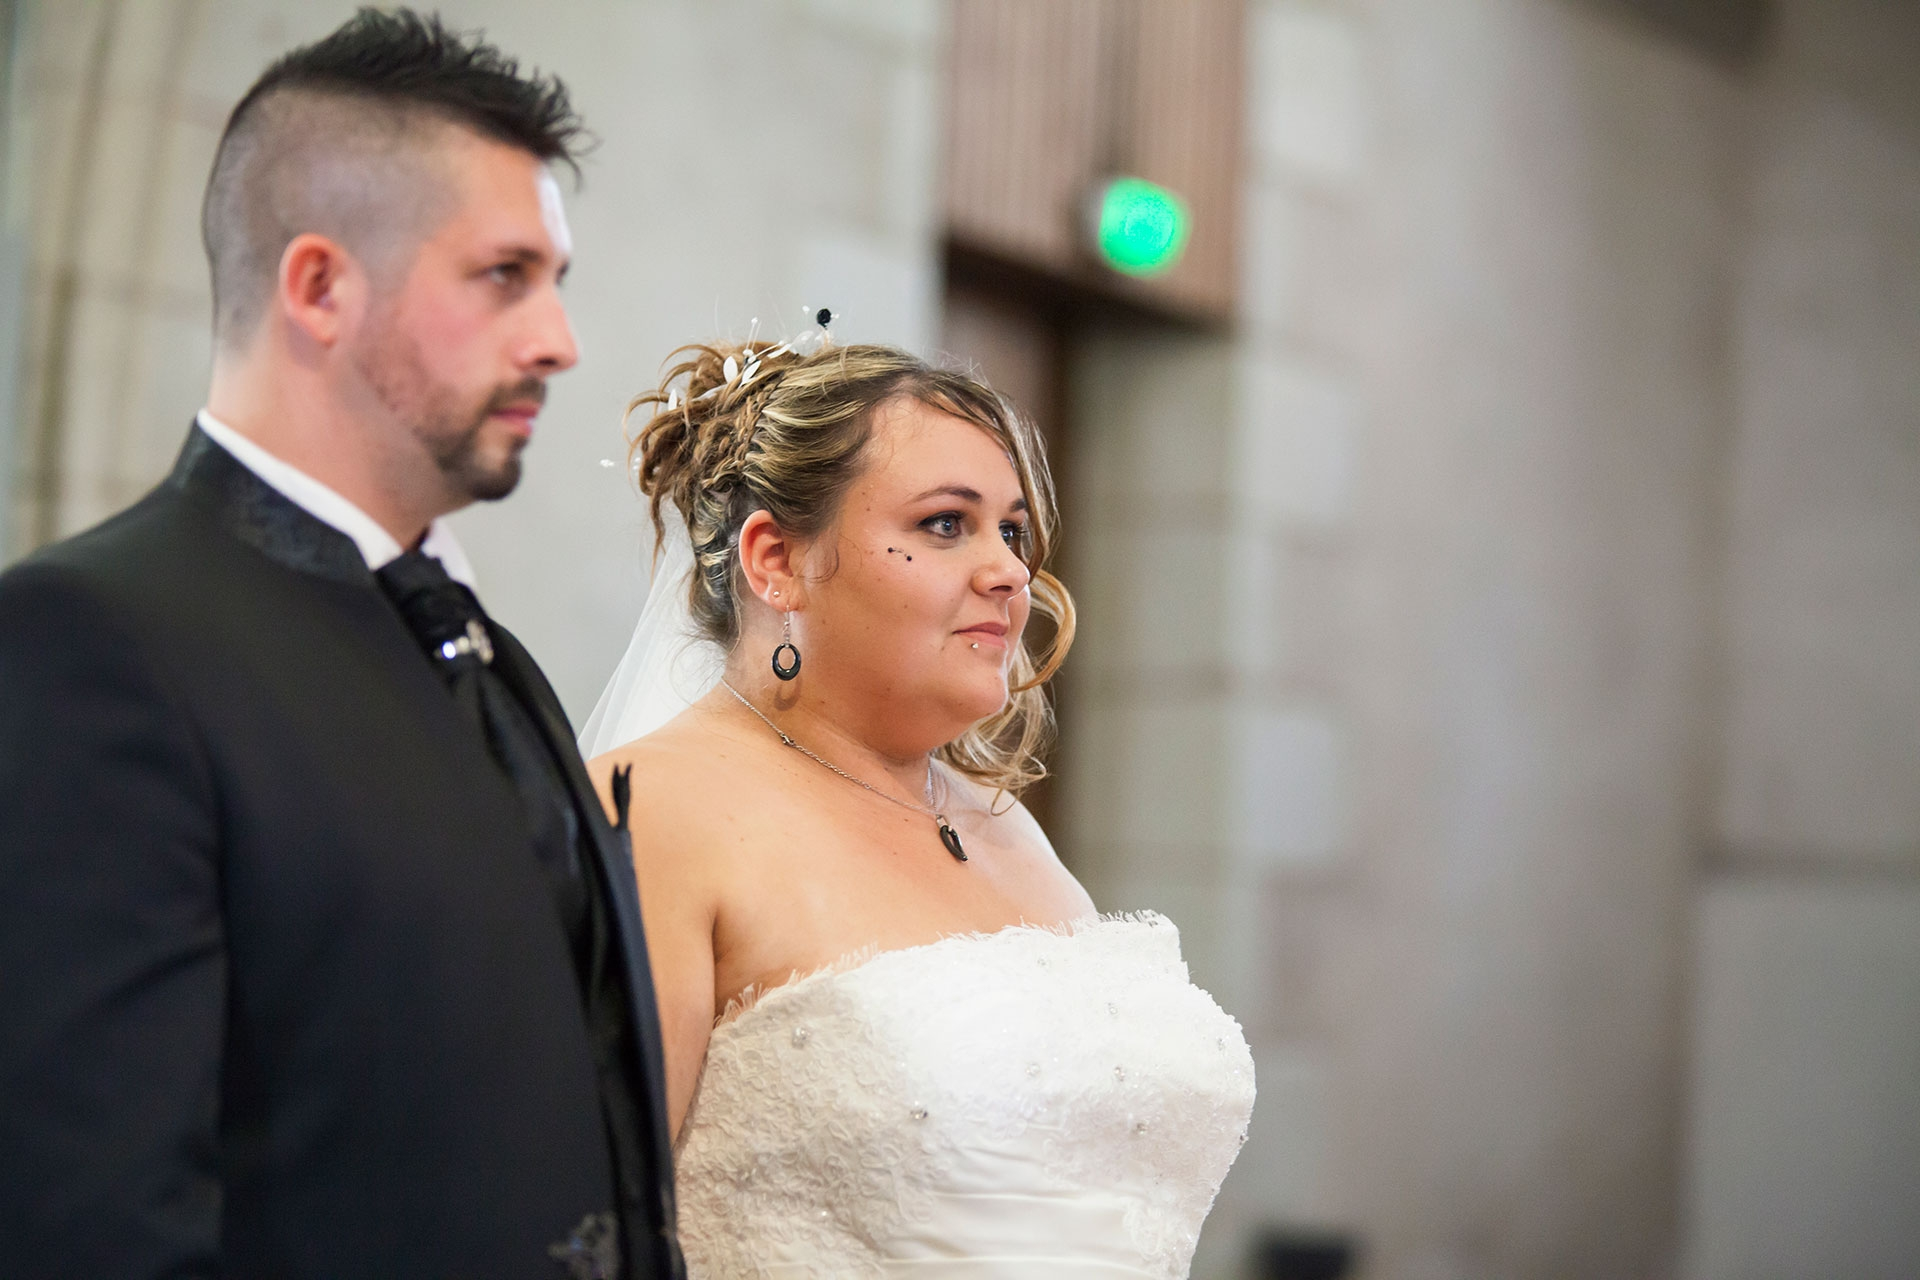 particuliers-evenements-mariages-oui-elodie&wilson-48